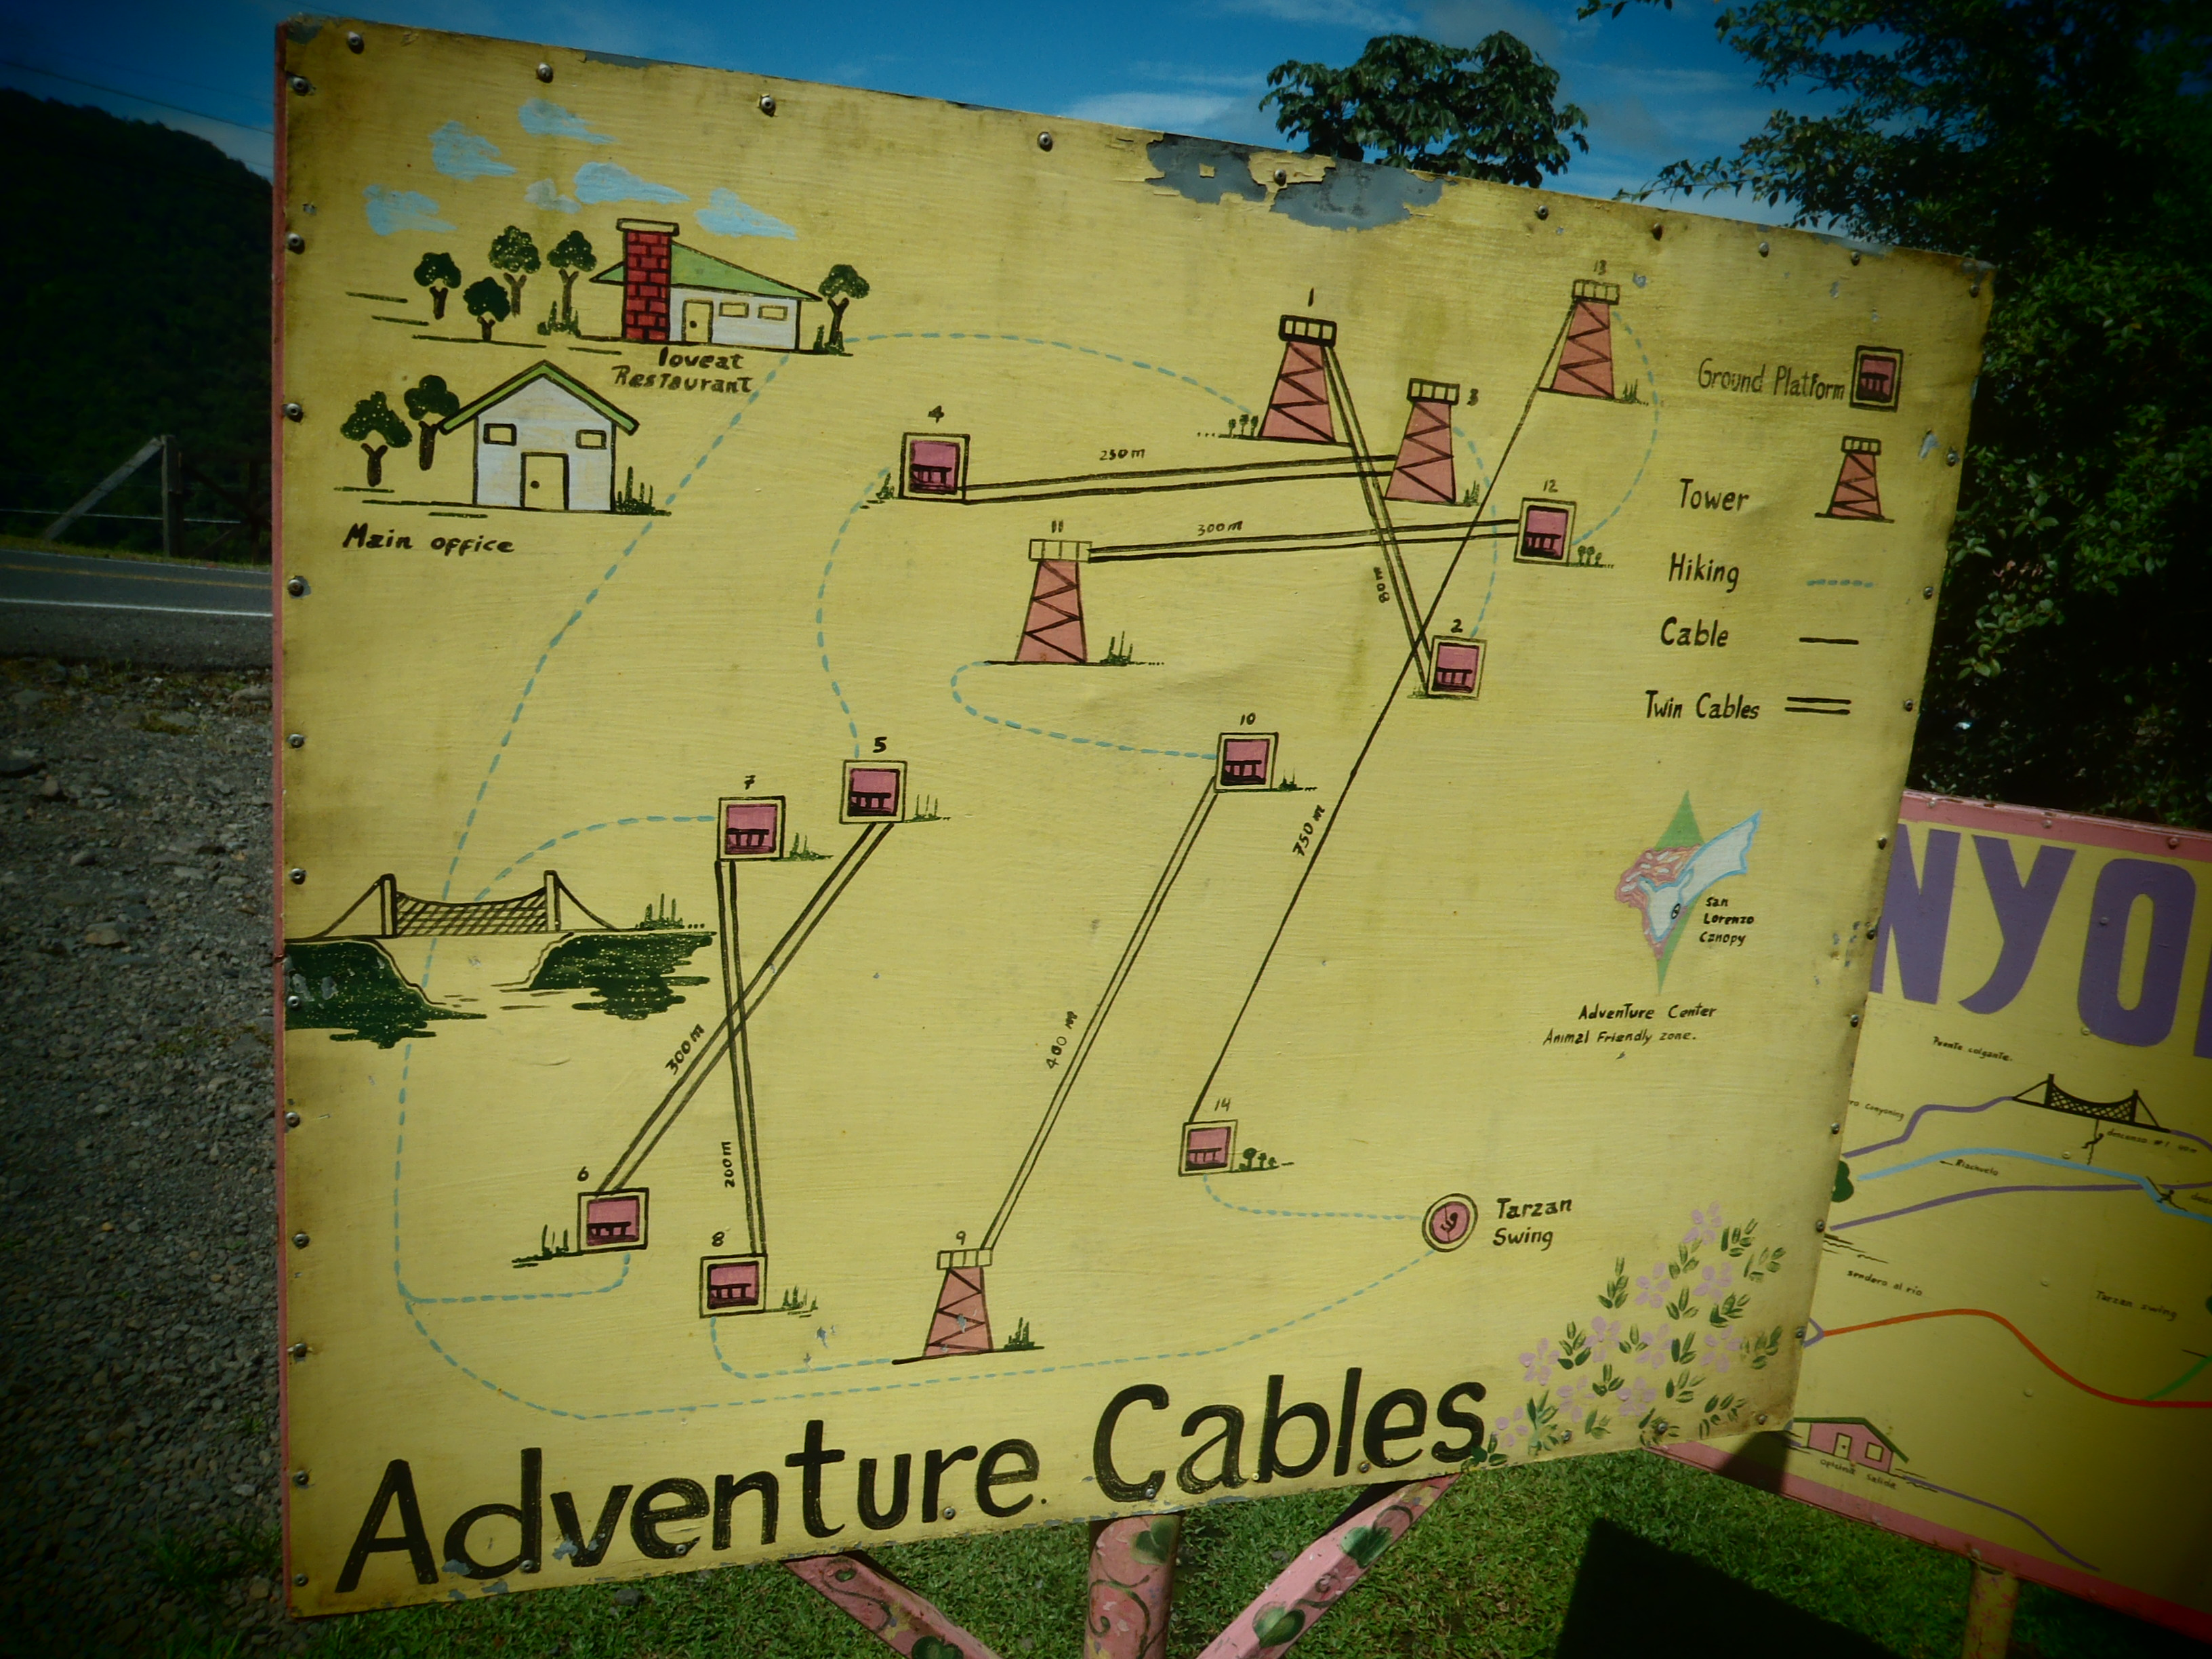 Adventure Cables; San Ramon, Costa Rica; 2013